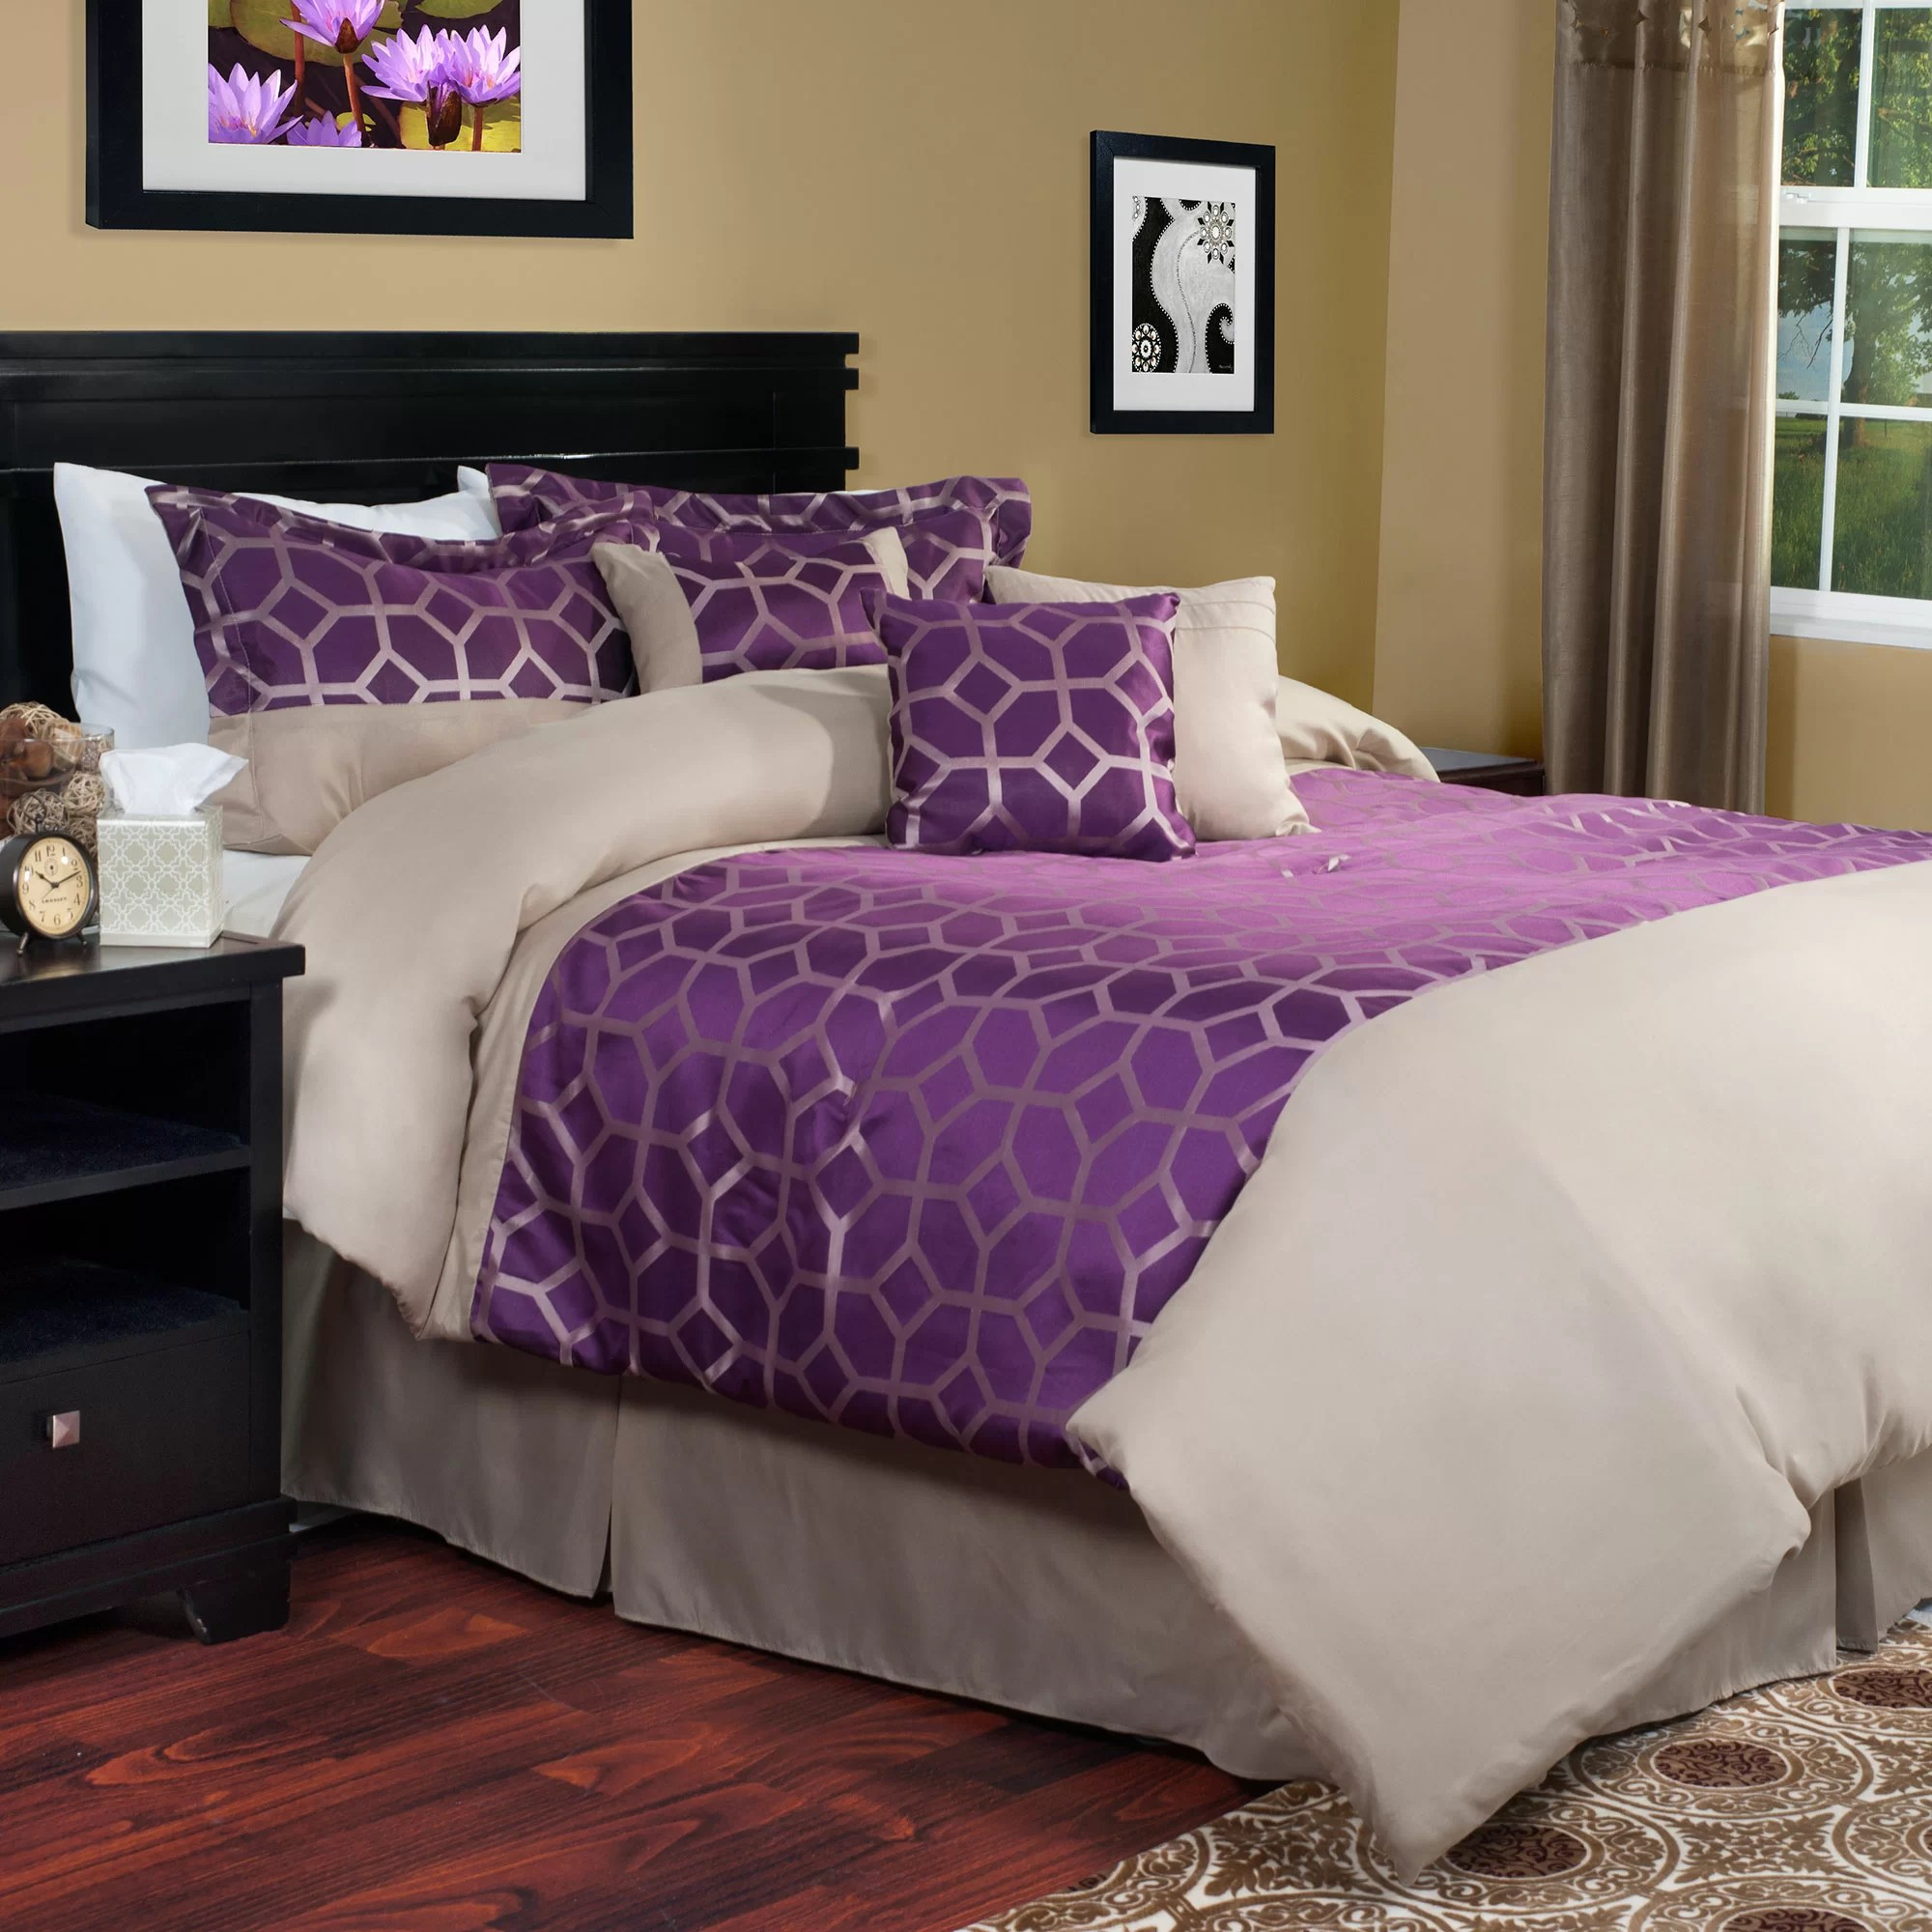 Purple and Gold Geometric Moroccan Print Bedding Set